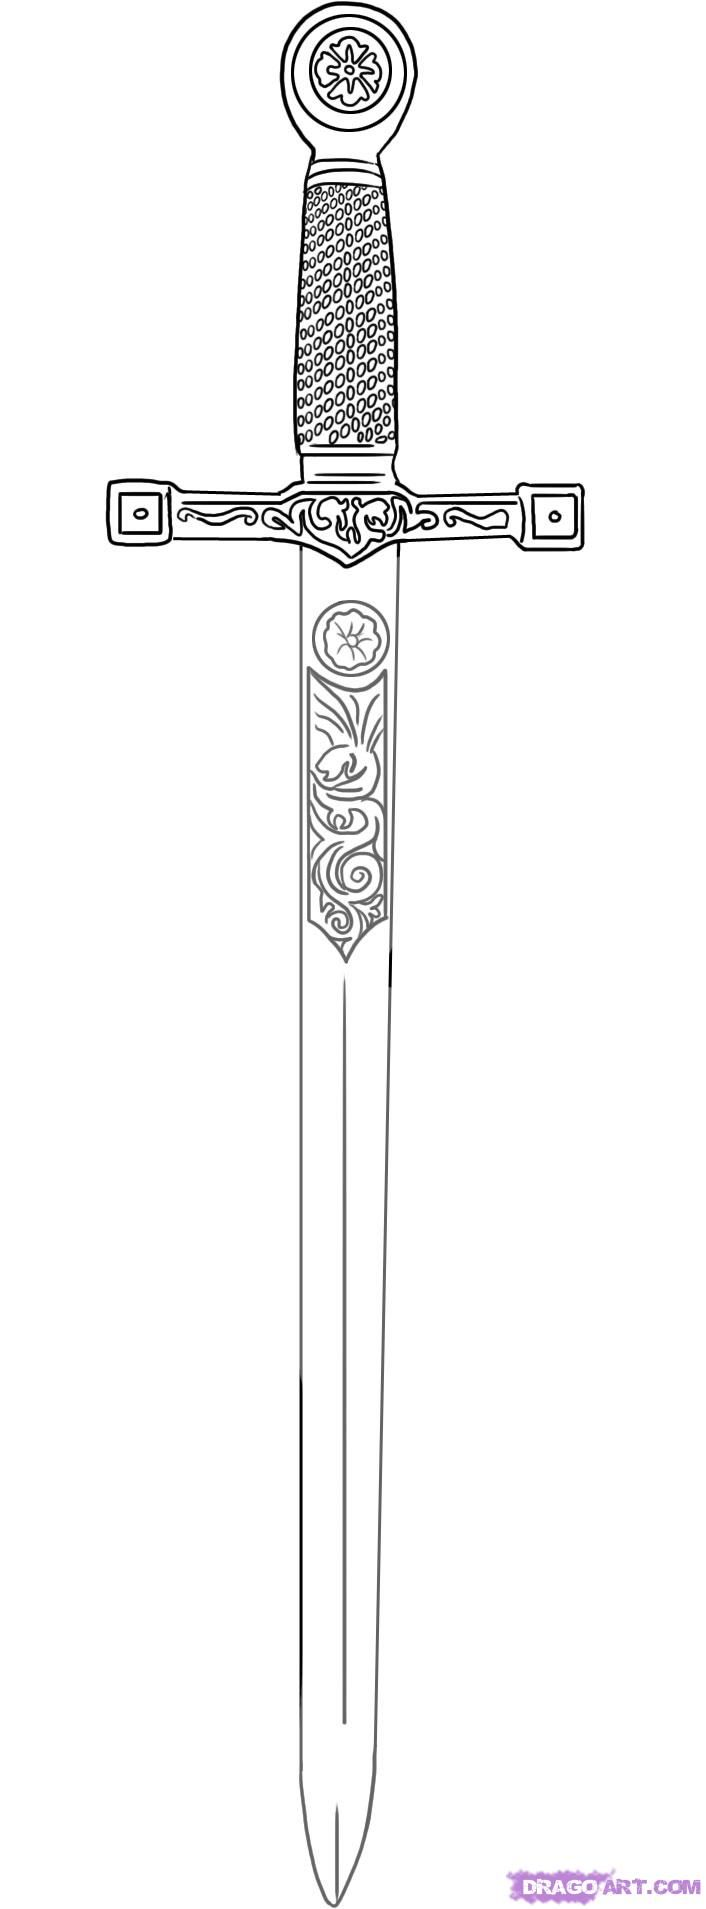 how-to-draw-excalibur-sword-in-the-stone-step-5_1_000000005599_5.jpg 706×1,909 pixels